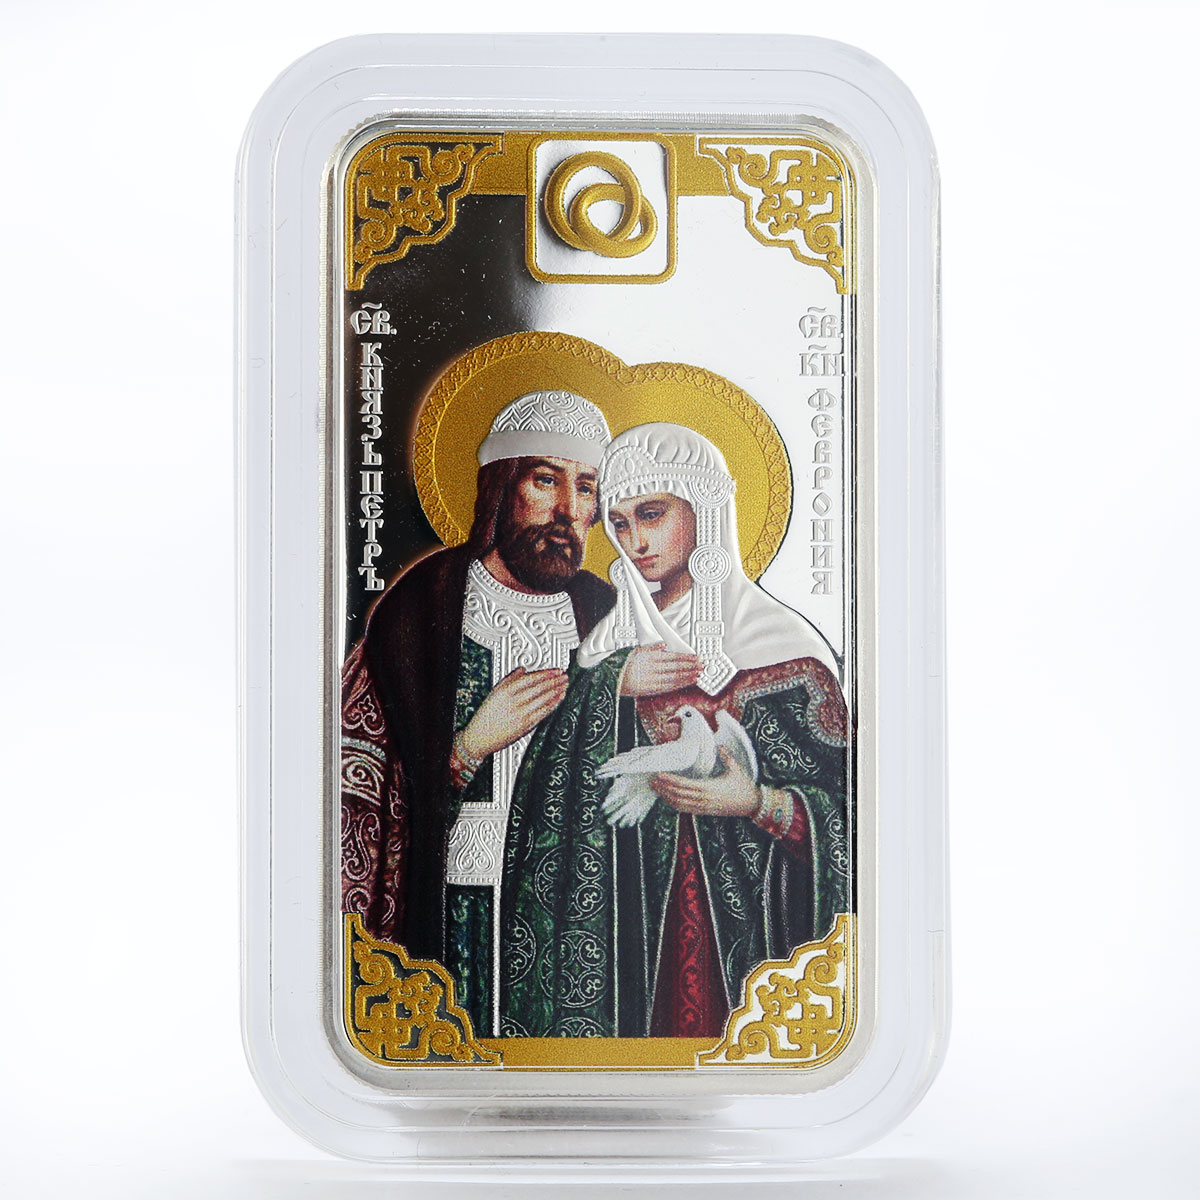 Cameroon 1000 francs Saints Pyotr and Fevronia colored proof silver coin 2019